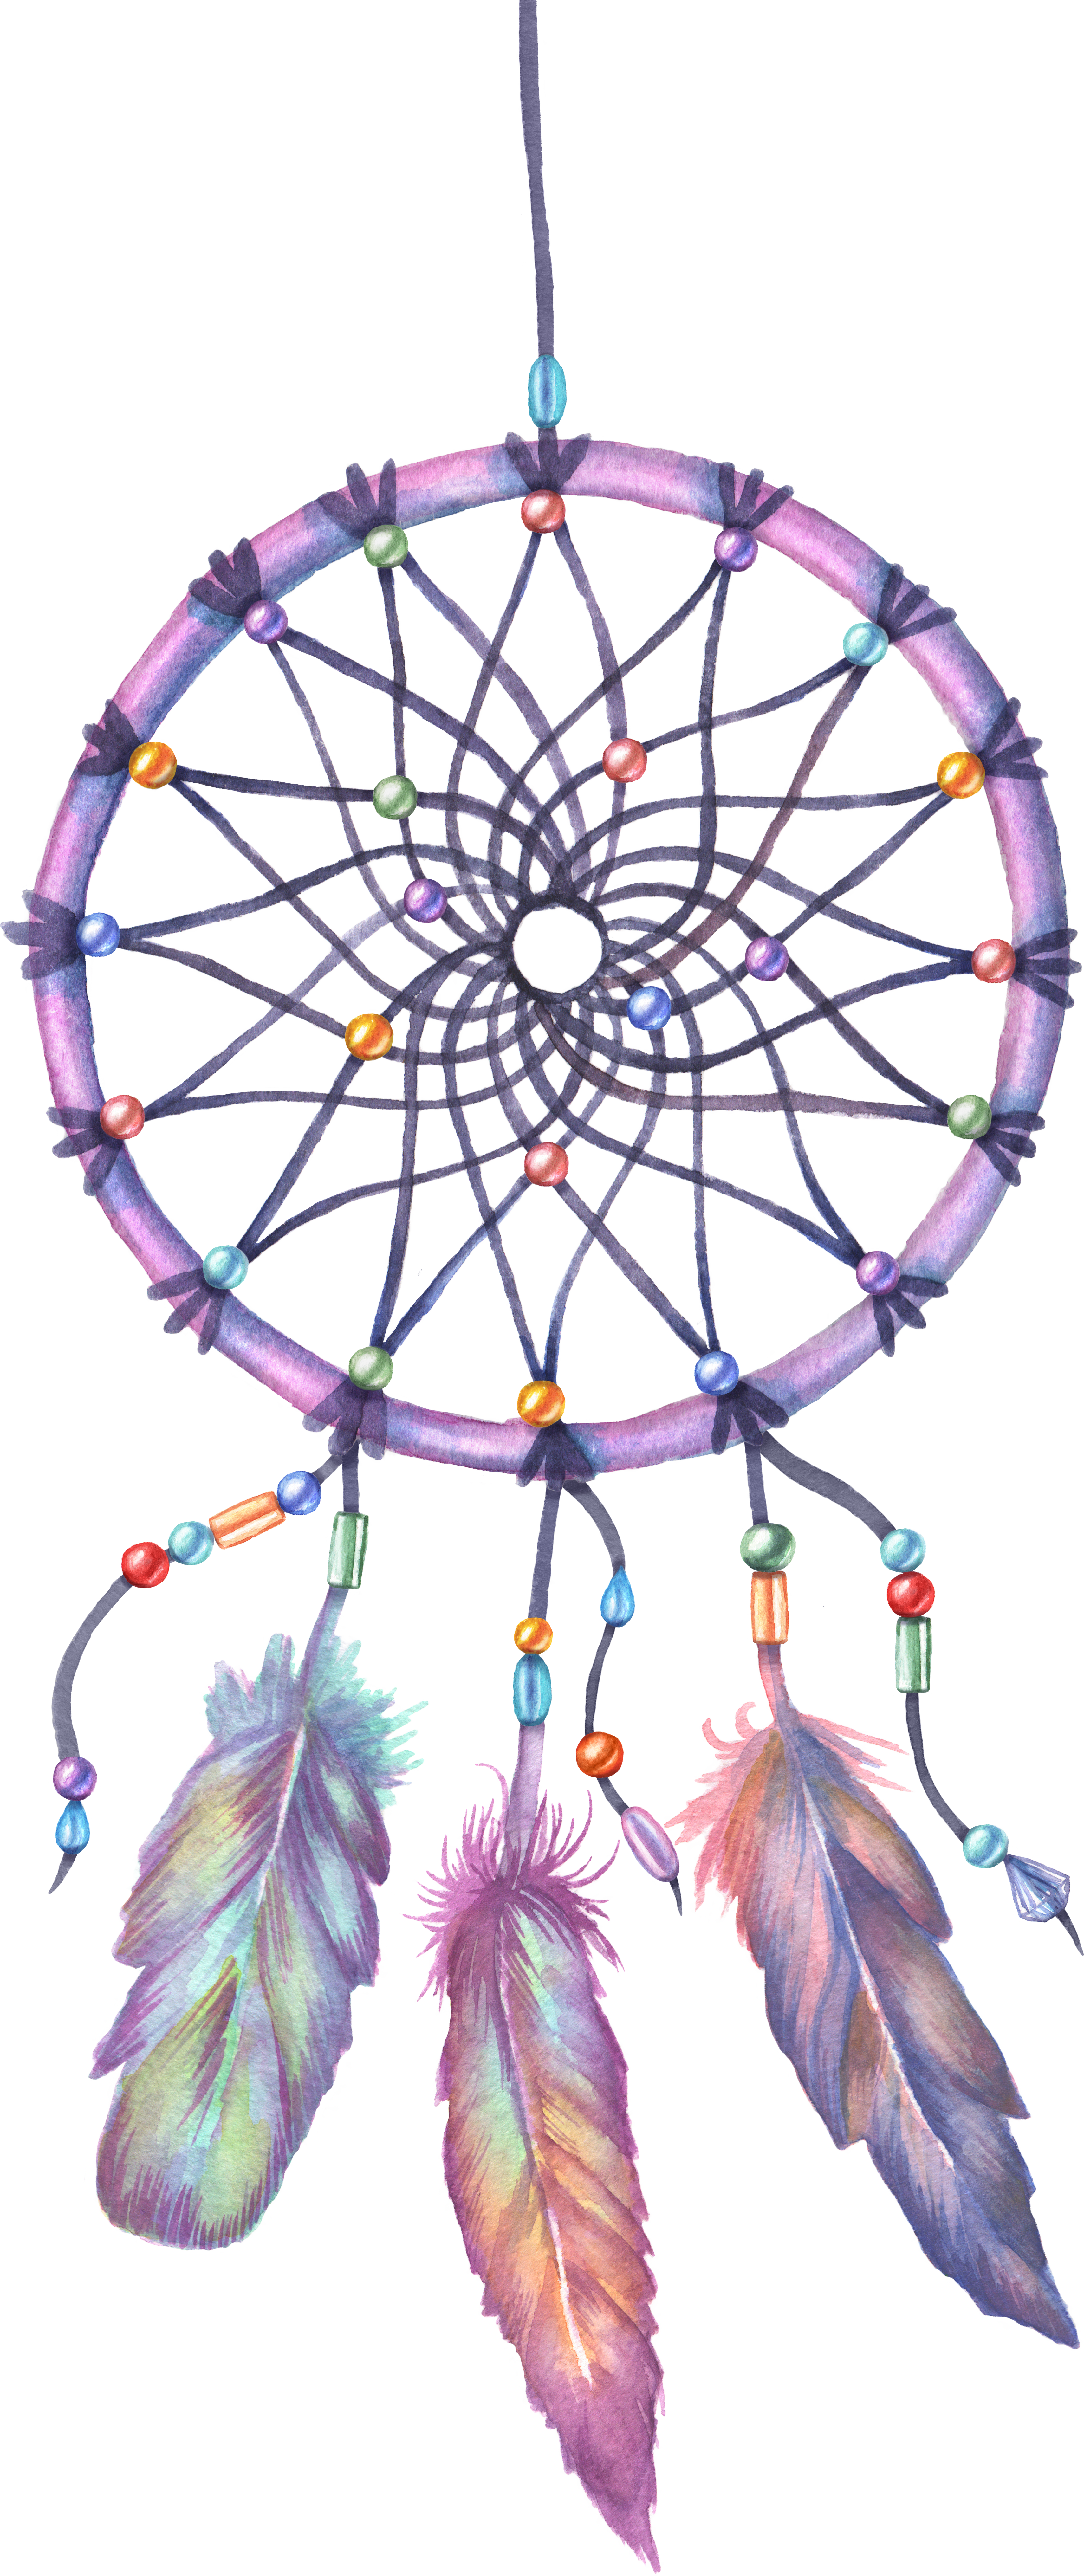 Drawing Dreamcatcher Free Transparent Image HD PNG Image